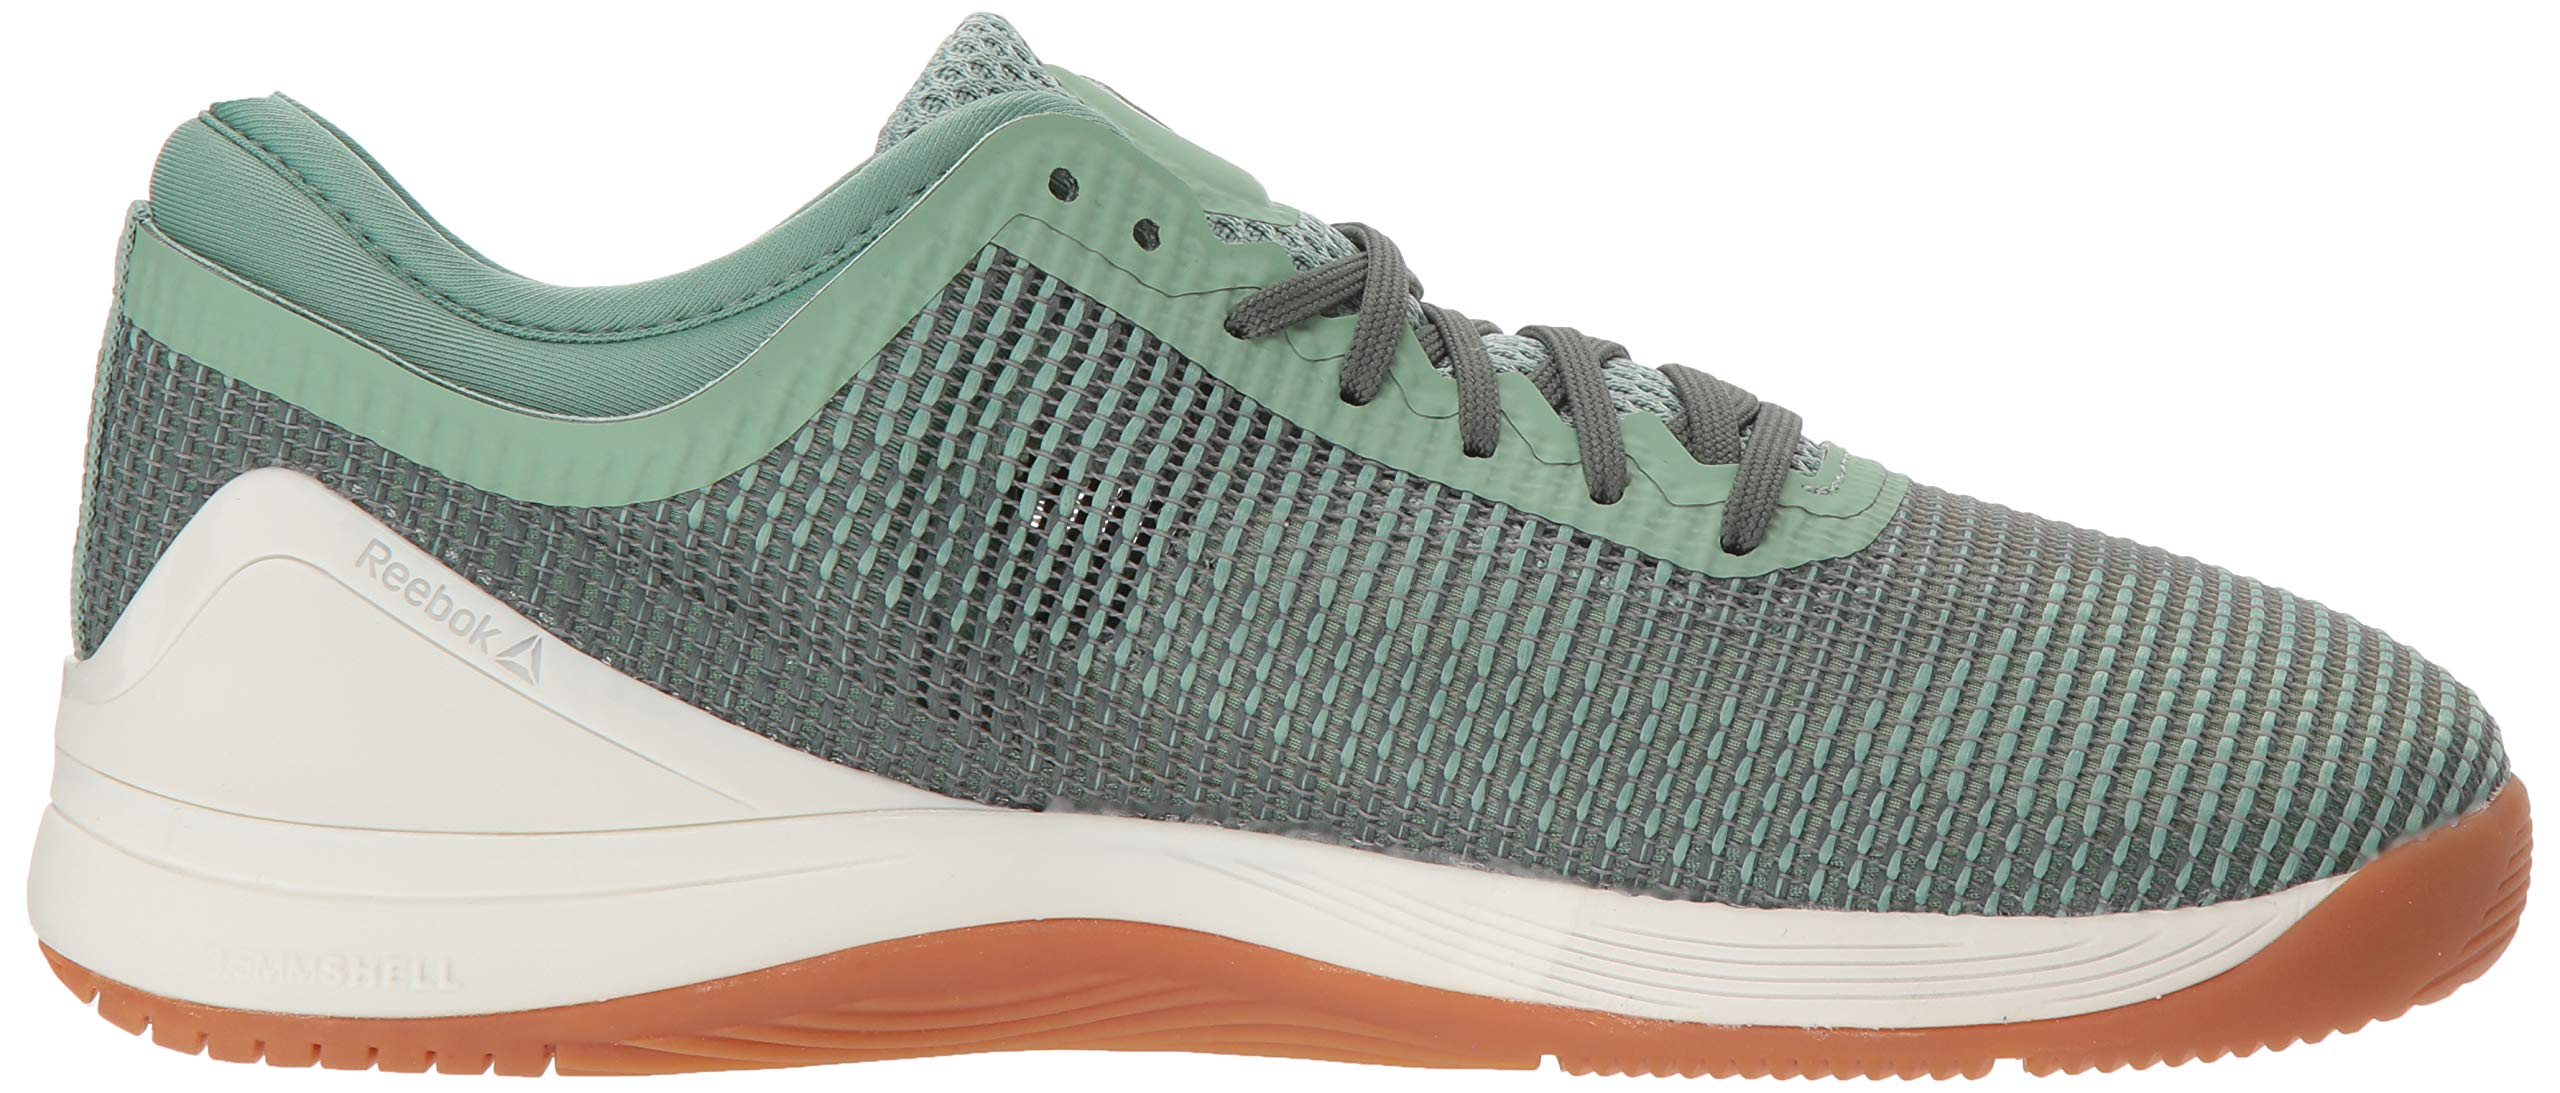 Reebok Women's CROSSFIT Nano 8.0 Flexweave Cross Trainer, industrial green/chalk grey, 5 M US by Reebok (Image #7)